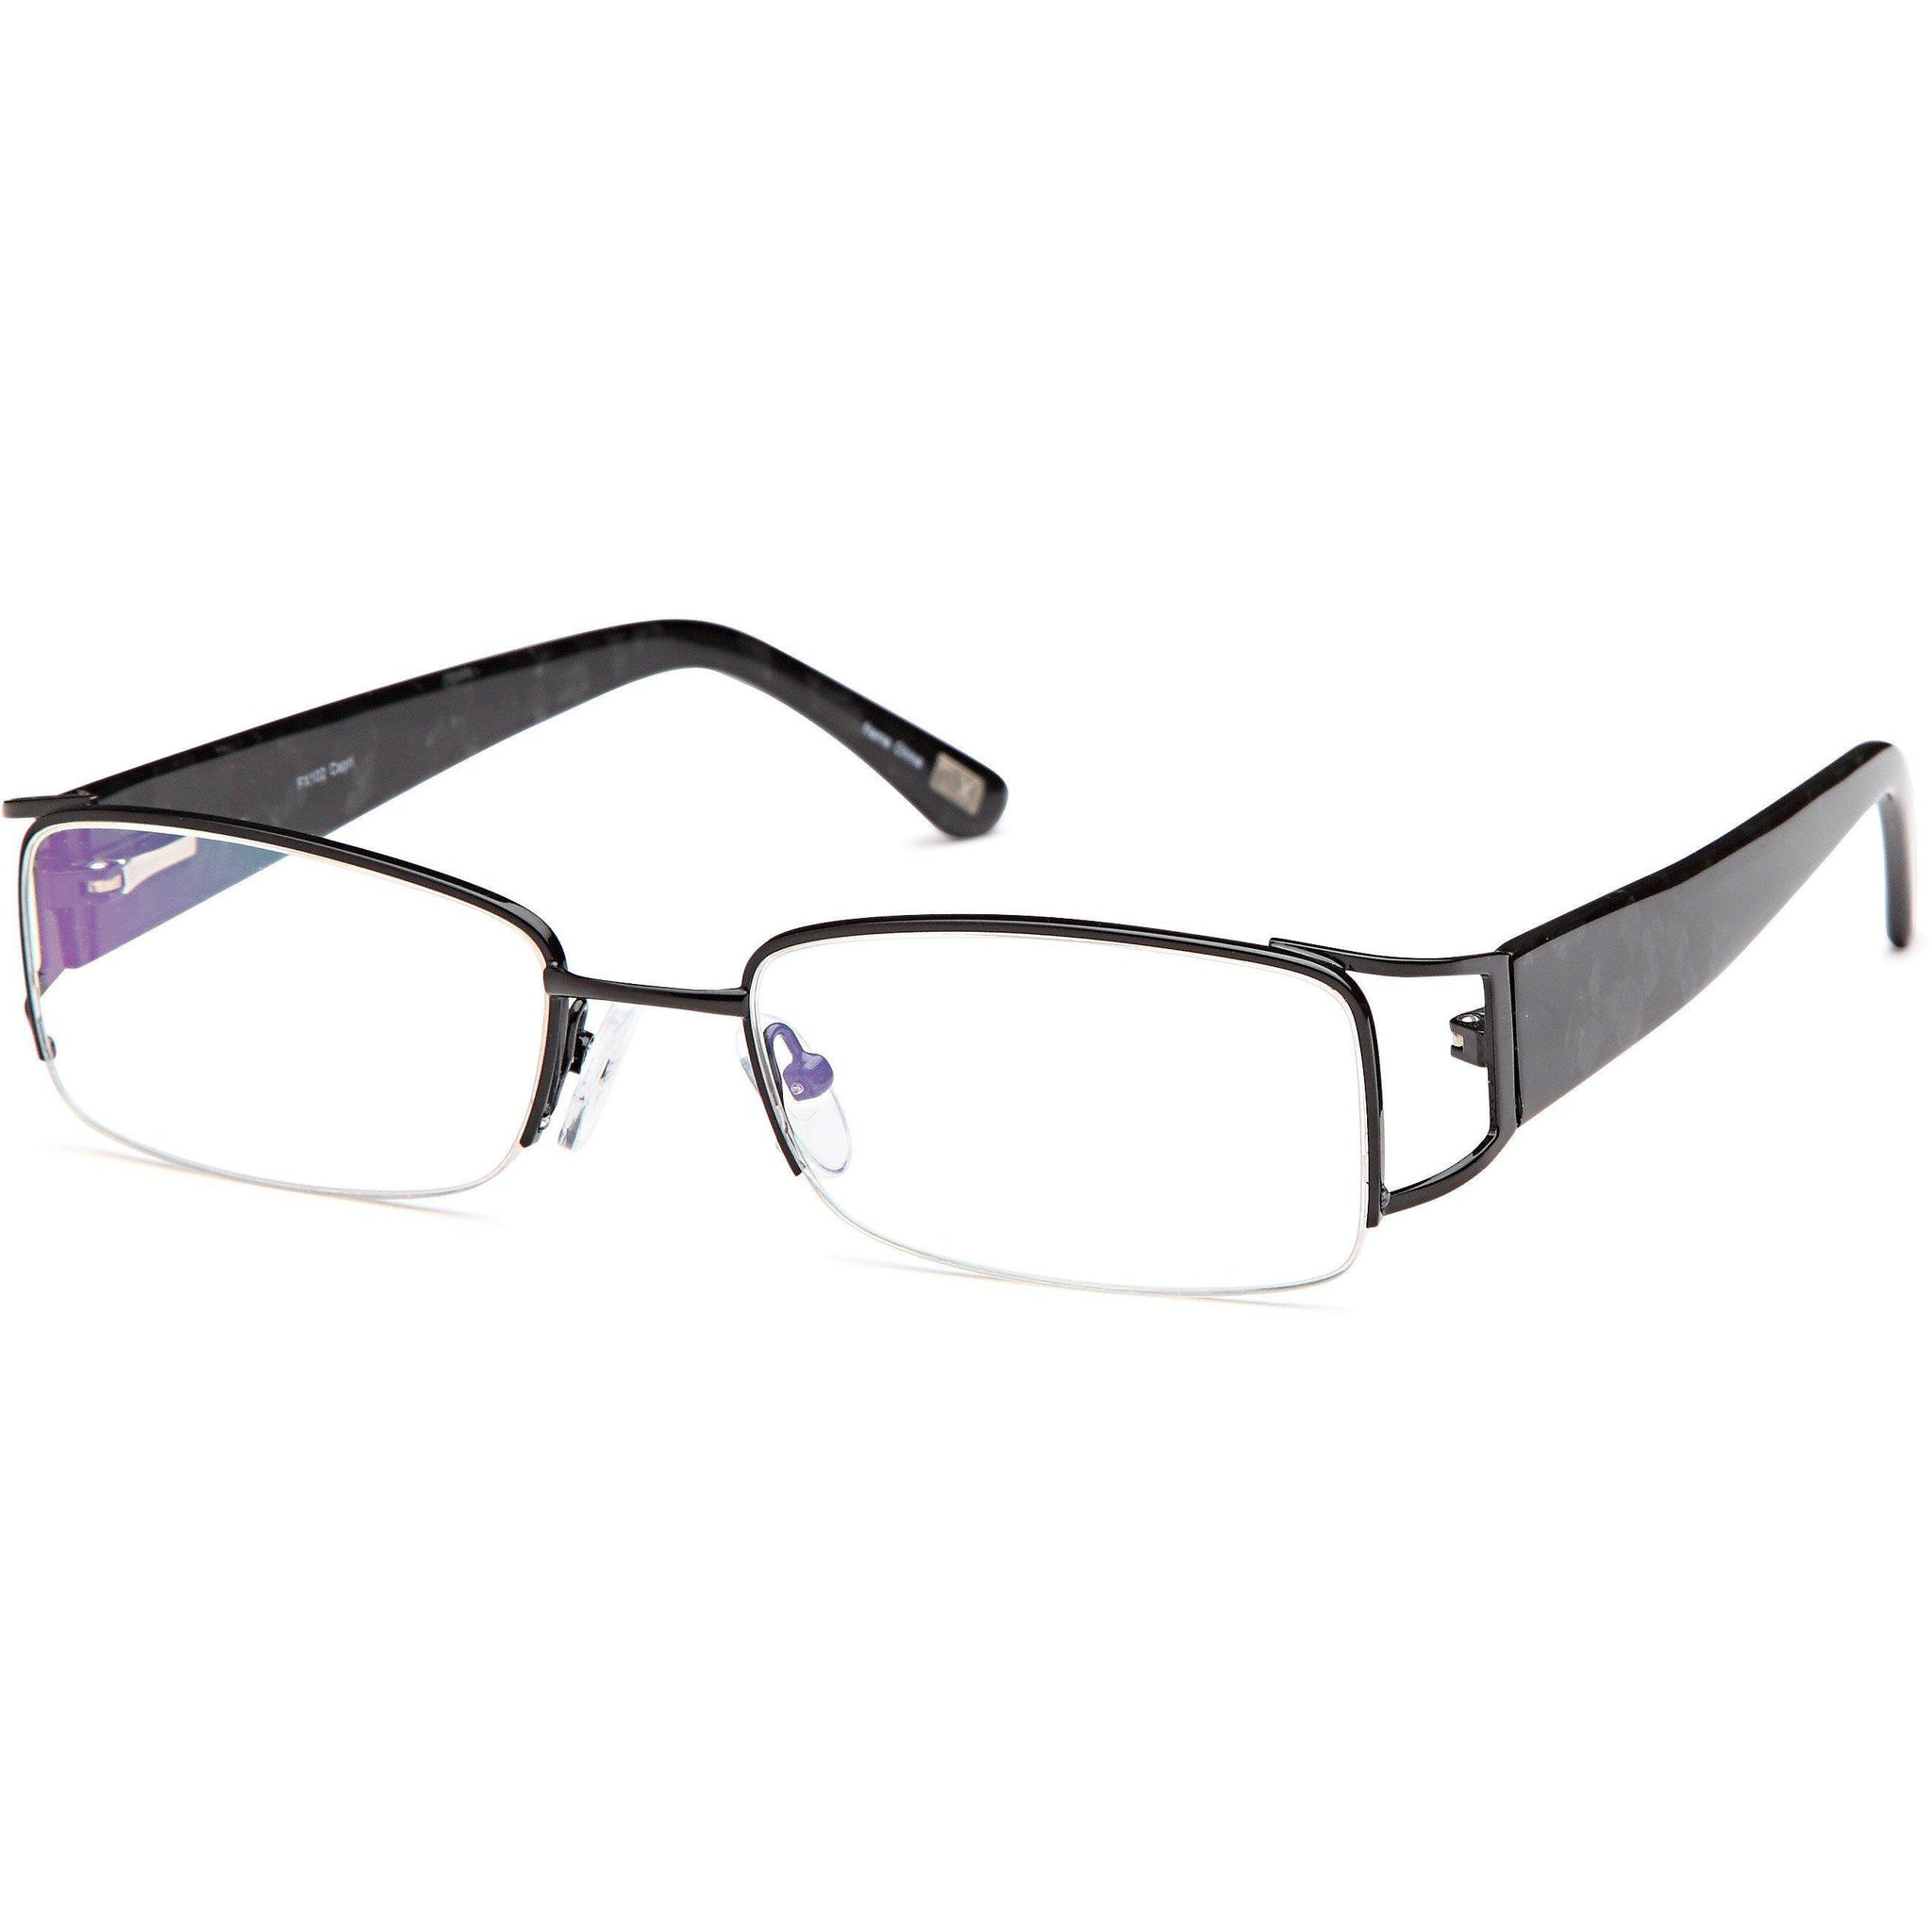 Titanium Prescription Glasses FX 102 Eyeglasses Frame